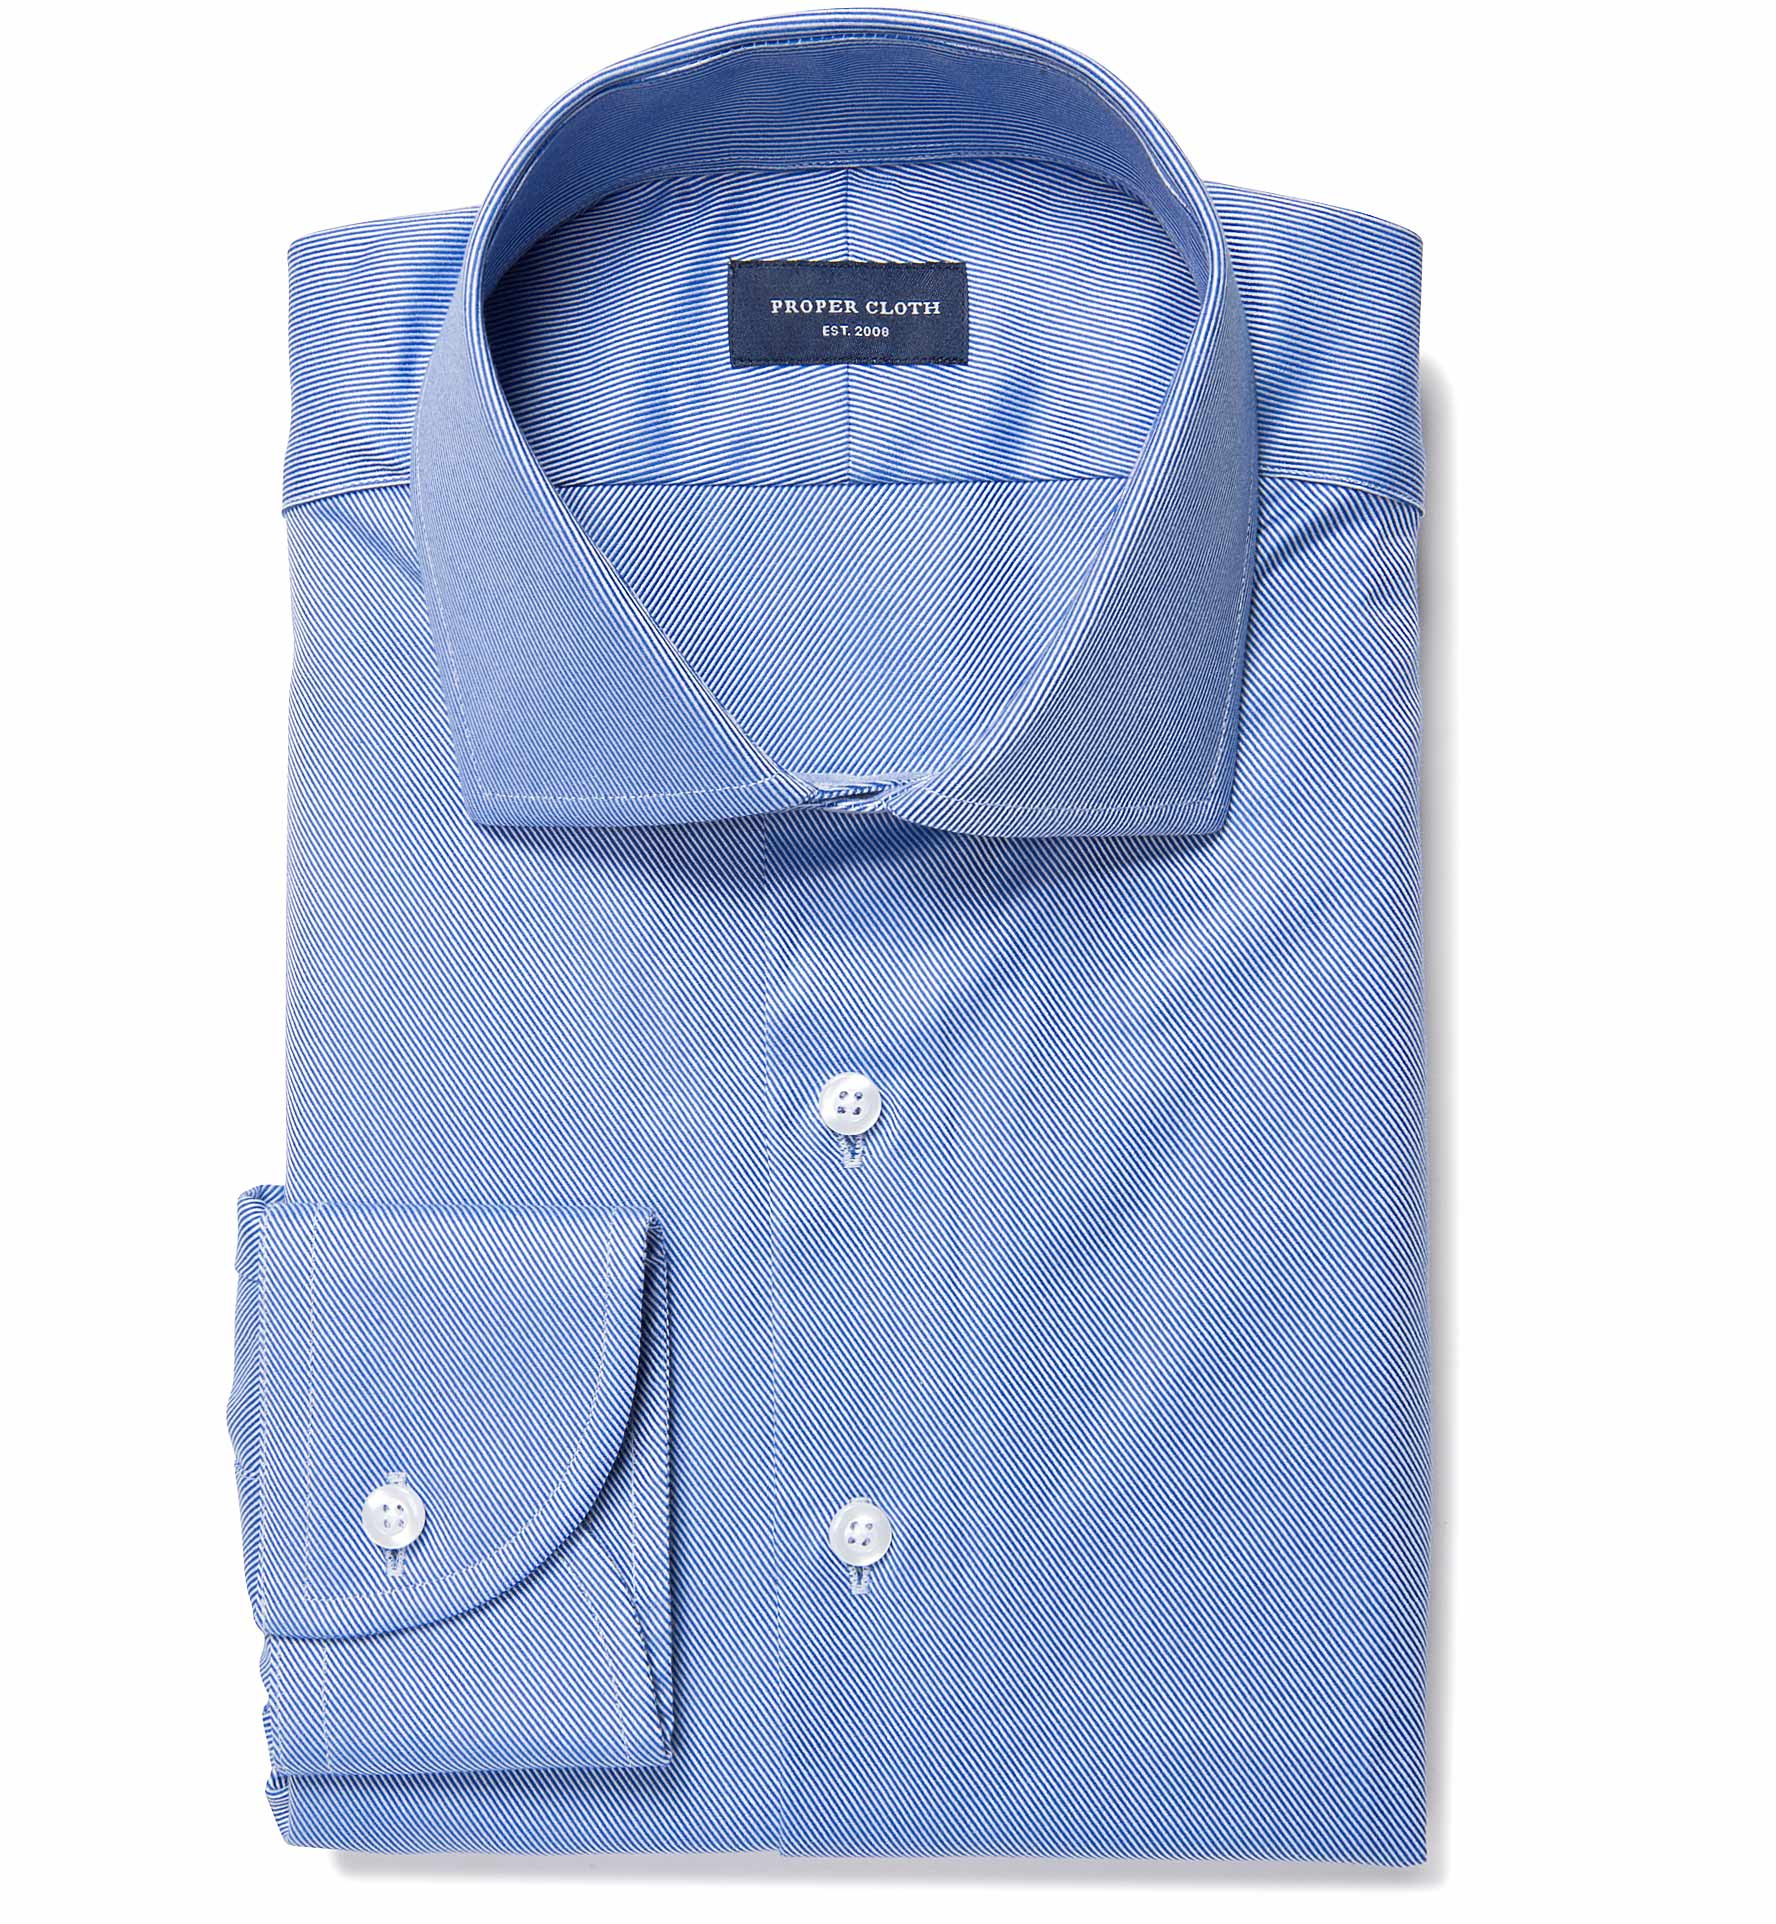 Blue wrinkle resistant cavalry twill fitted dress shirt by Best wrinkle free dress shirts